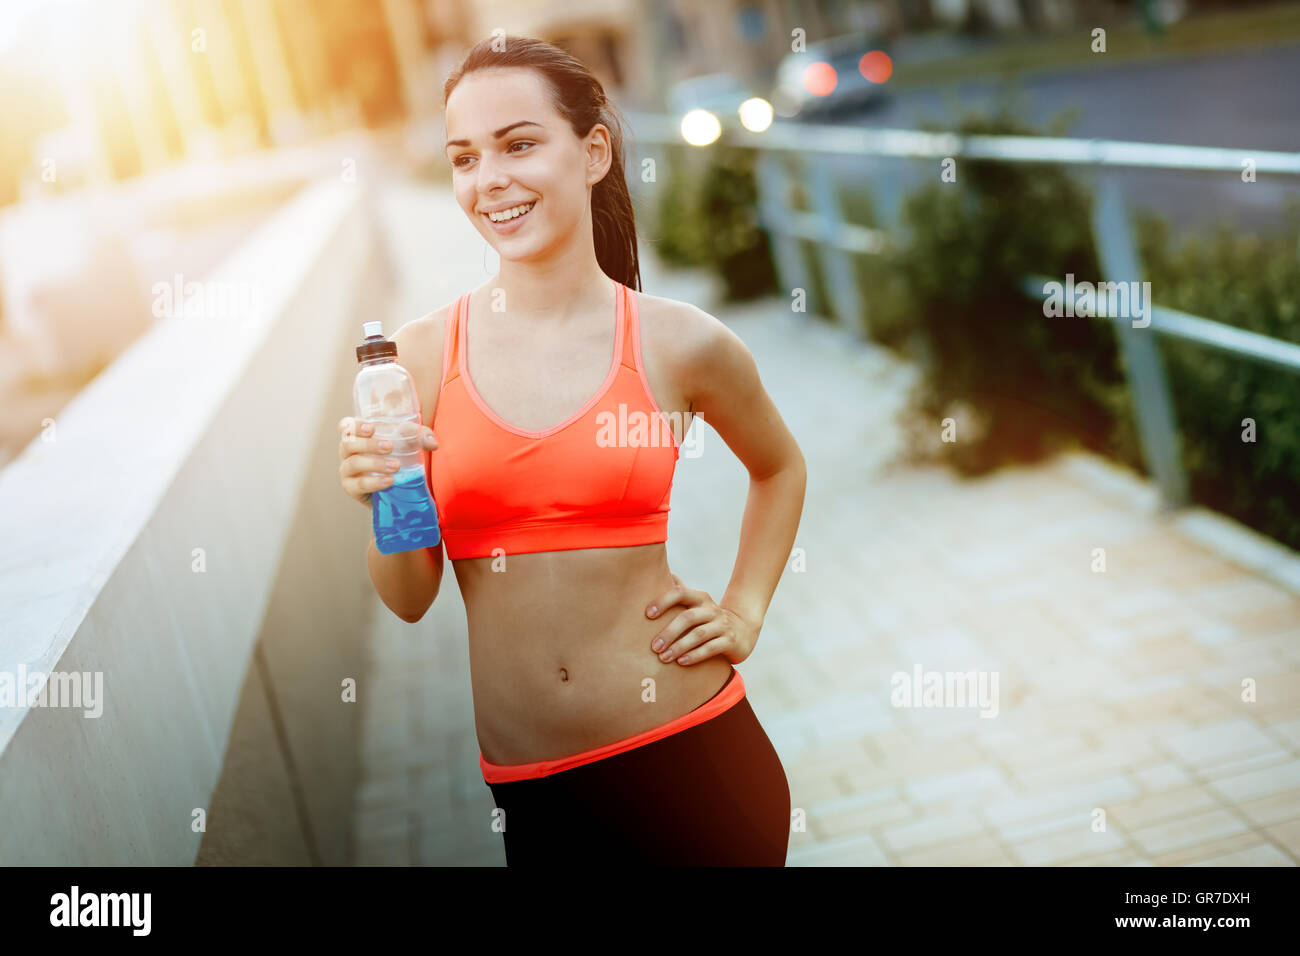 Determined woman jogging to stay healthy - Stock Image